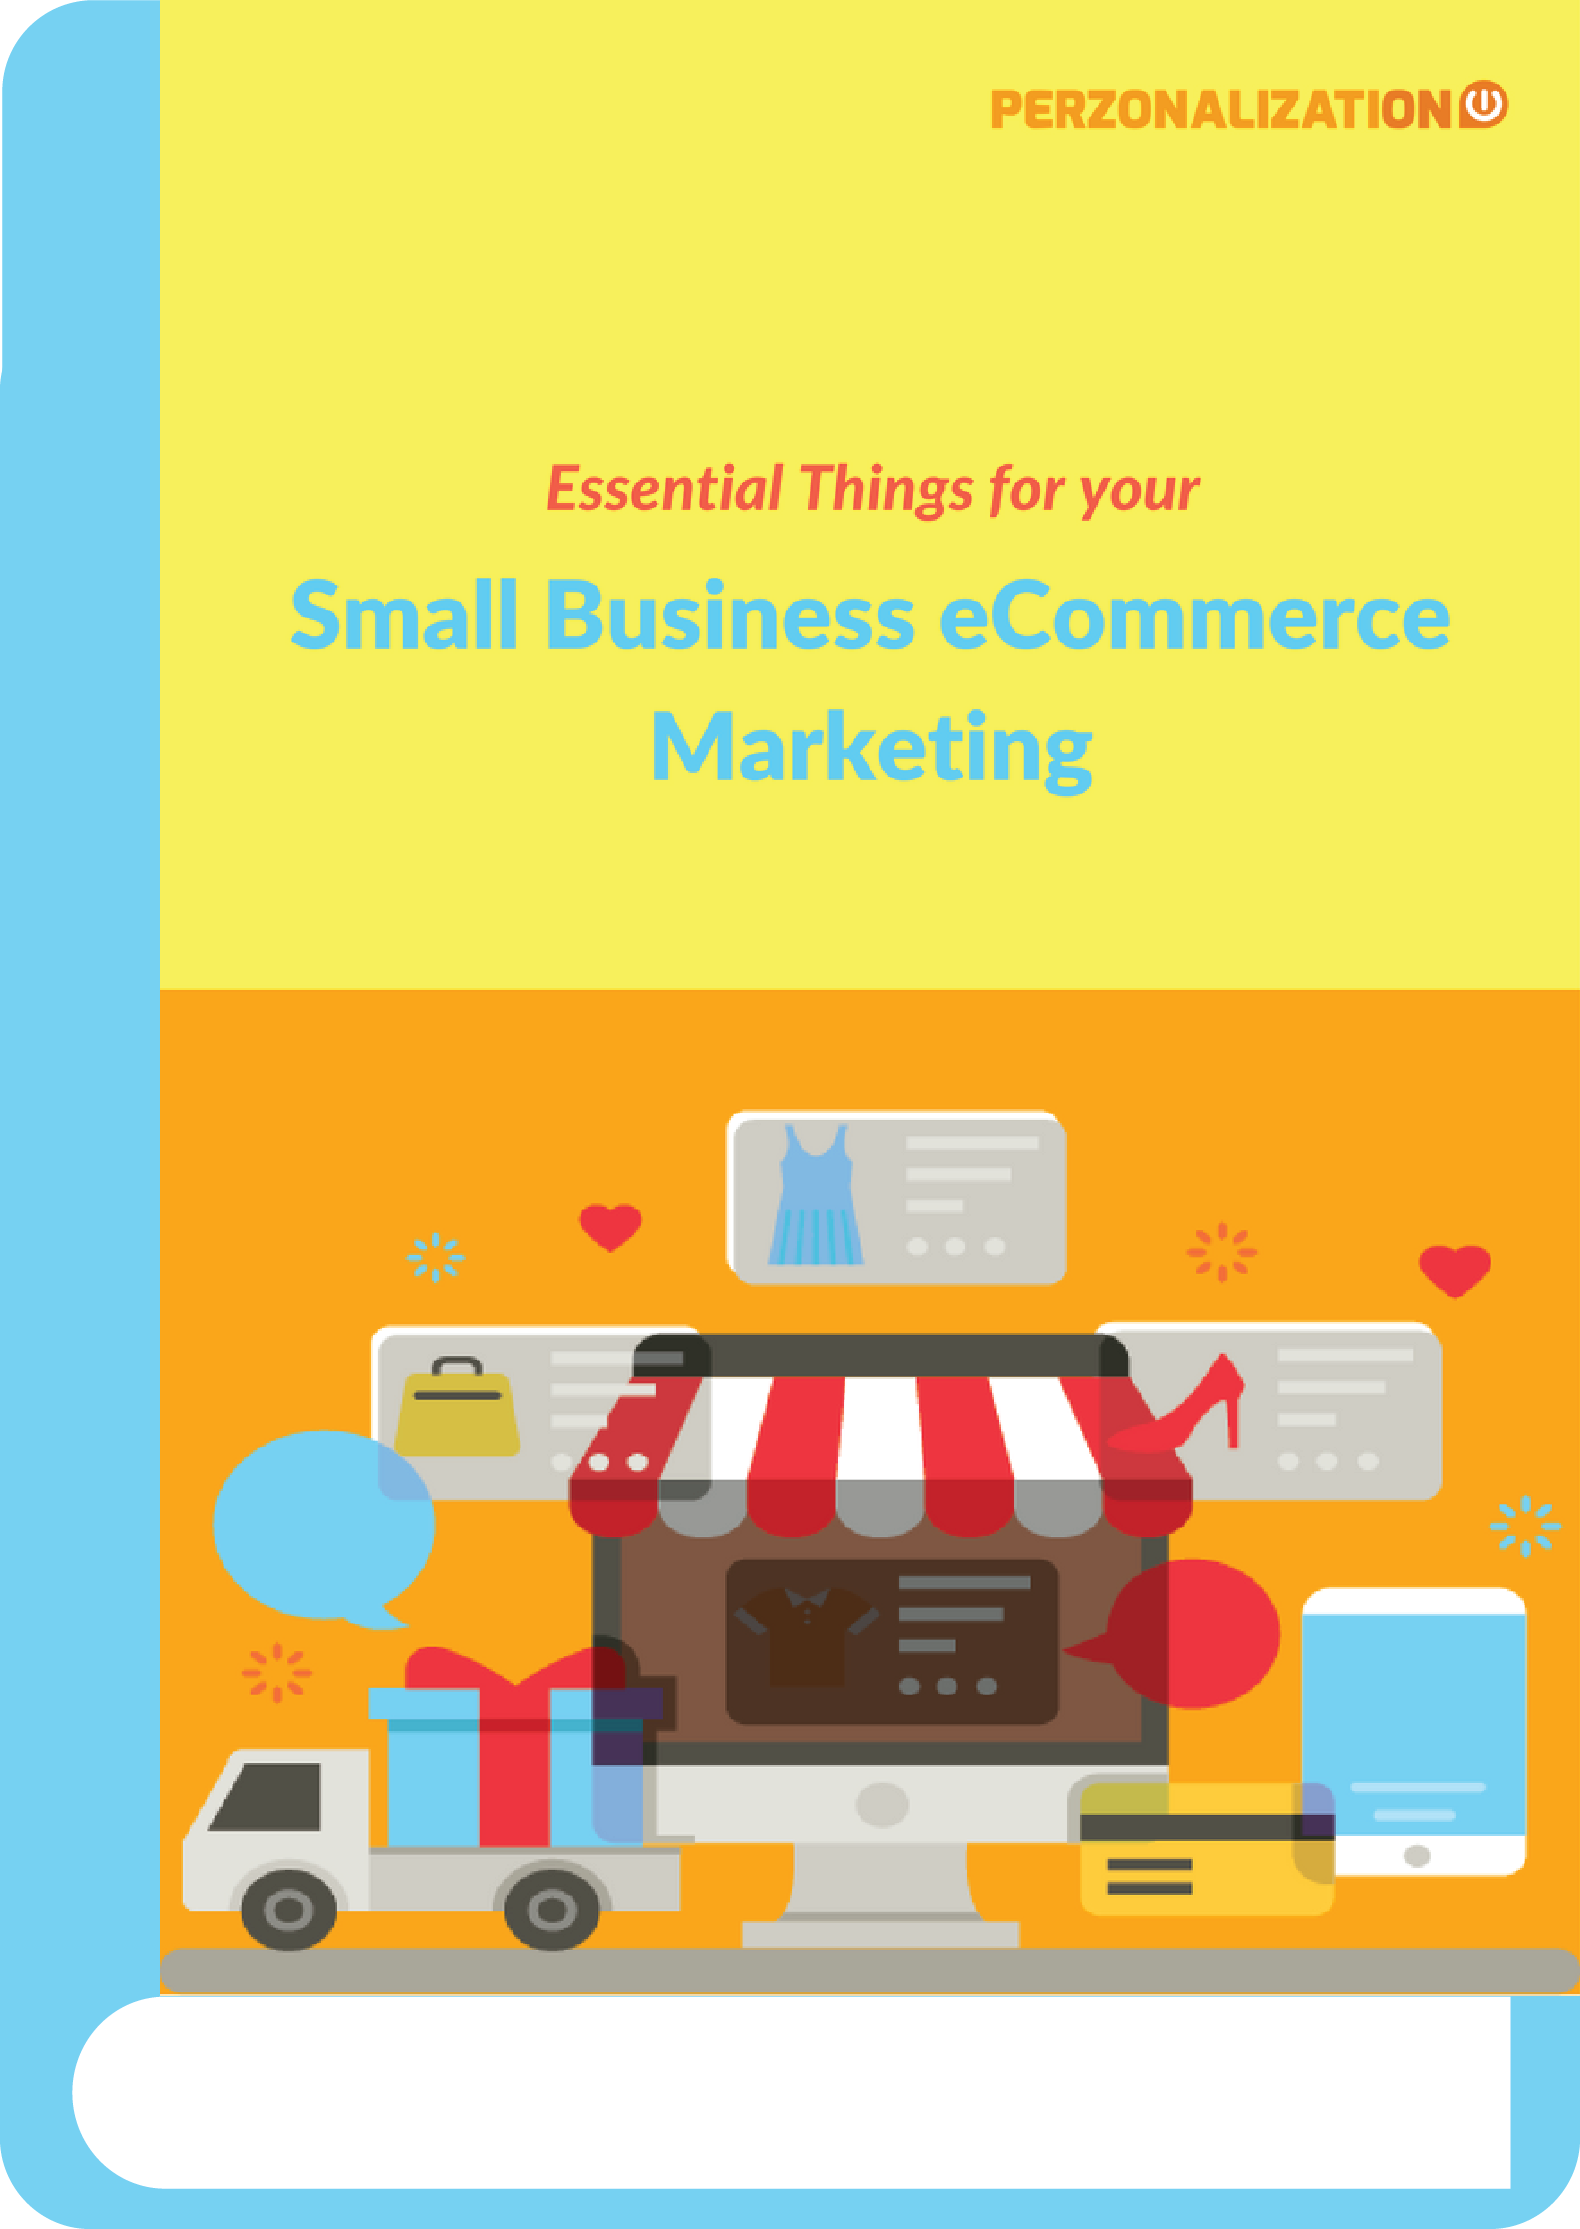 If you're running a small business eCommerce, then SaaS apps may be the answer for the majority of your marketing needs. Find out more in this free eBook!